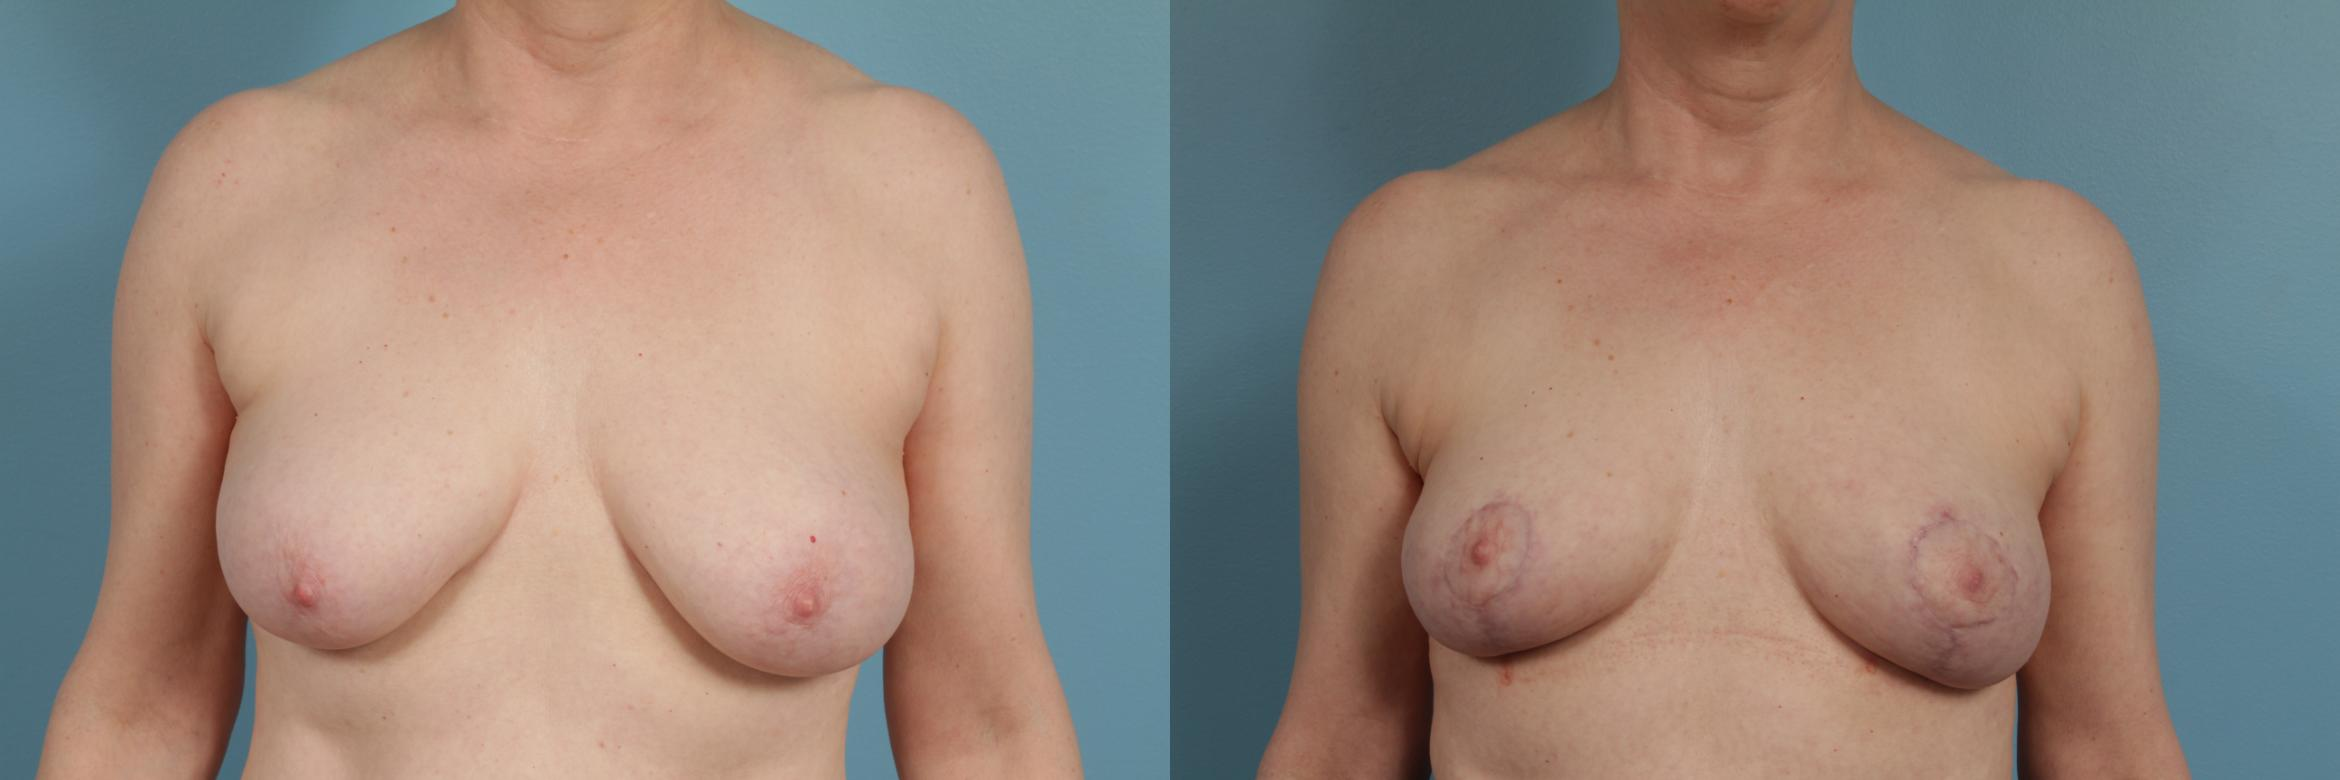 Breast Lift Case 313 Before & After View #1 | Chicago, IL | TLKM Plastic Surgery